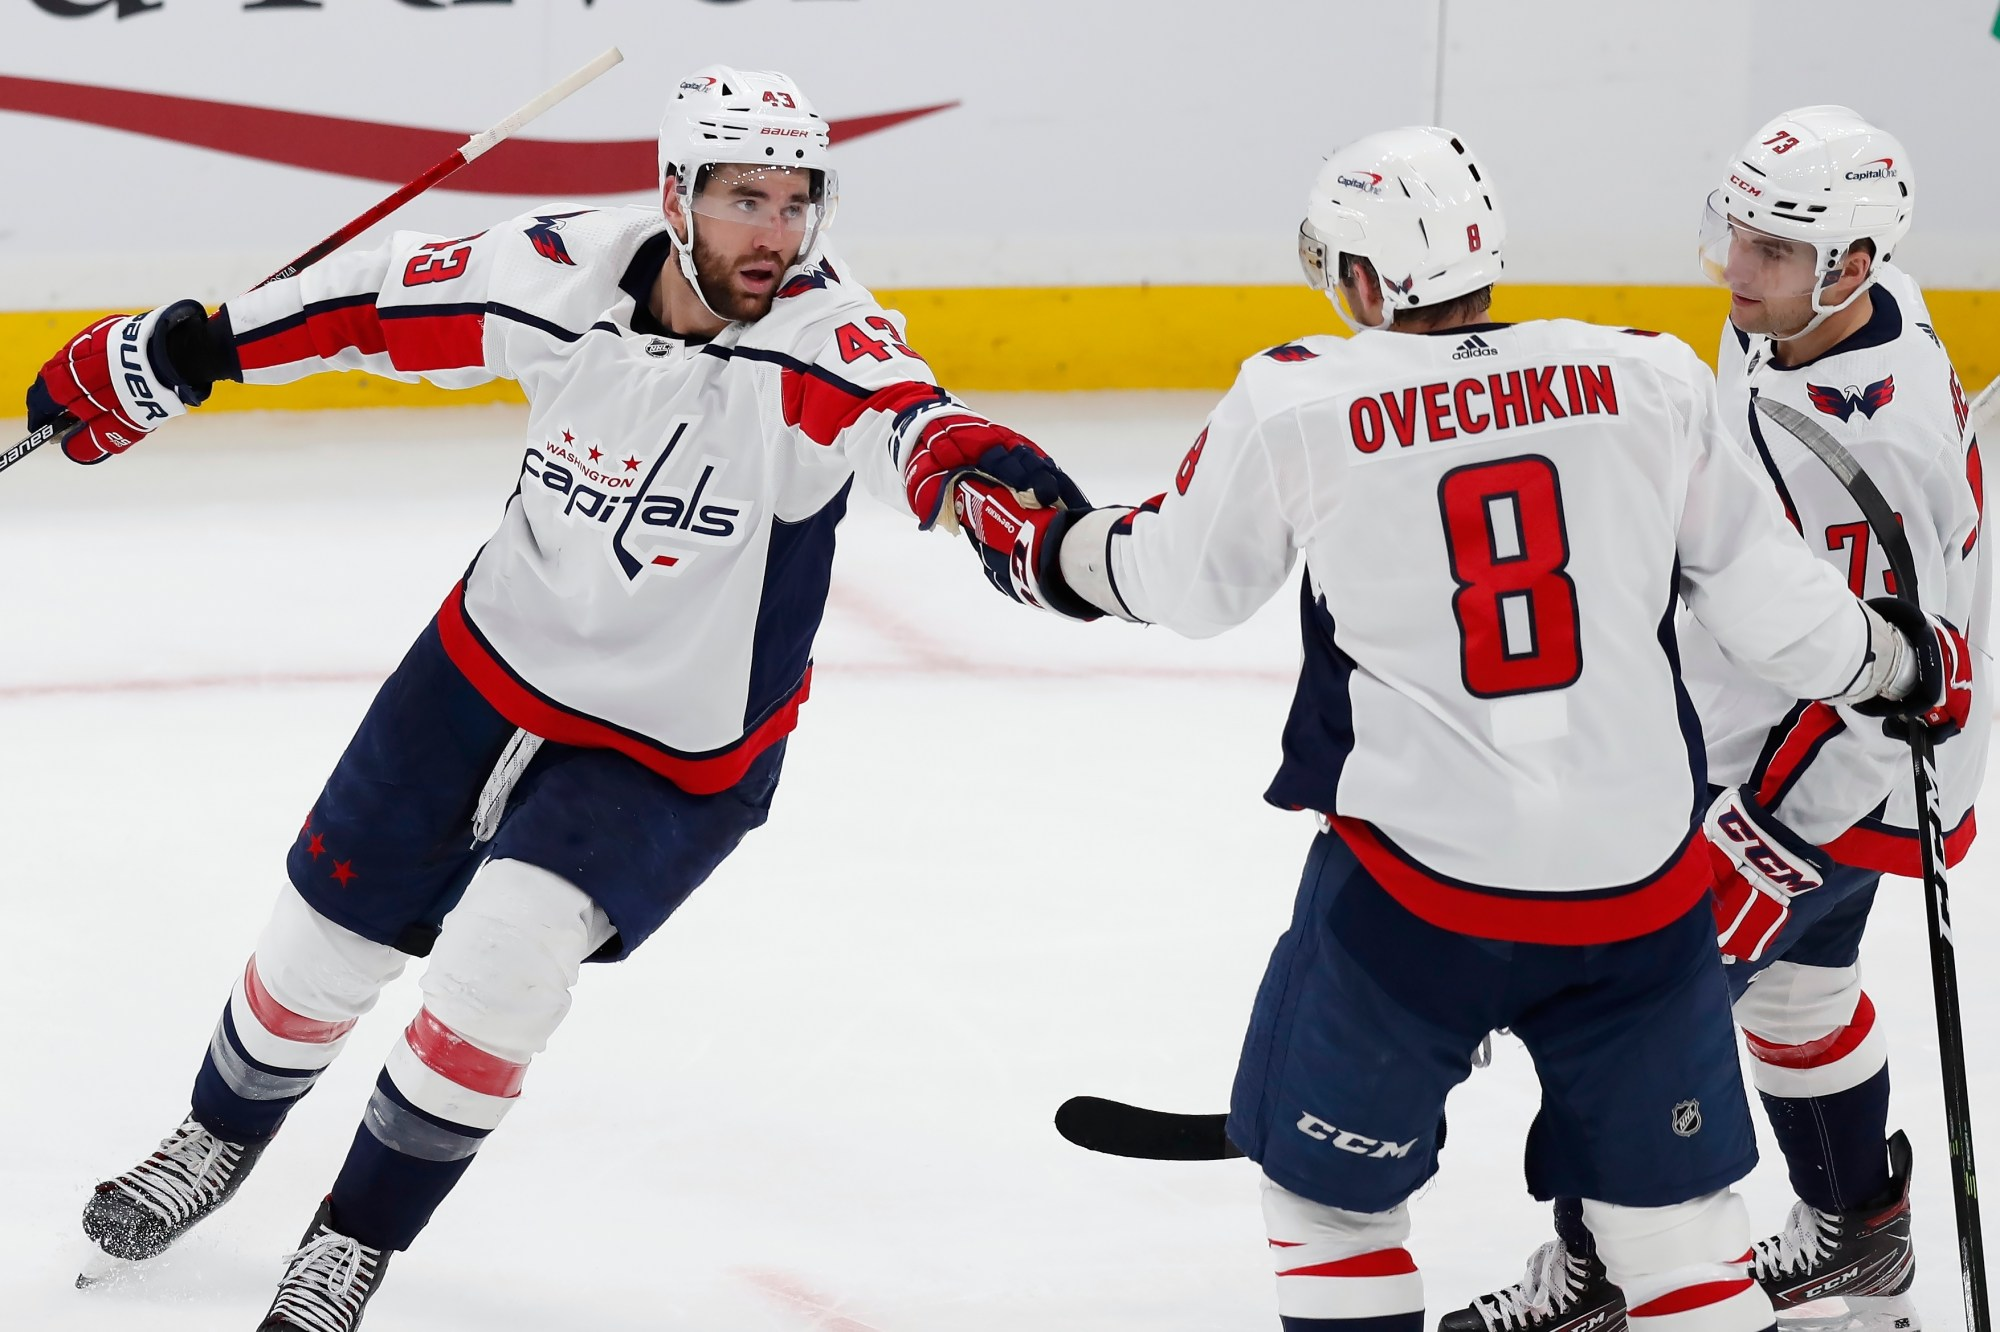 Tom Wilson, Alex Ovechkin, Conor Sheary